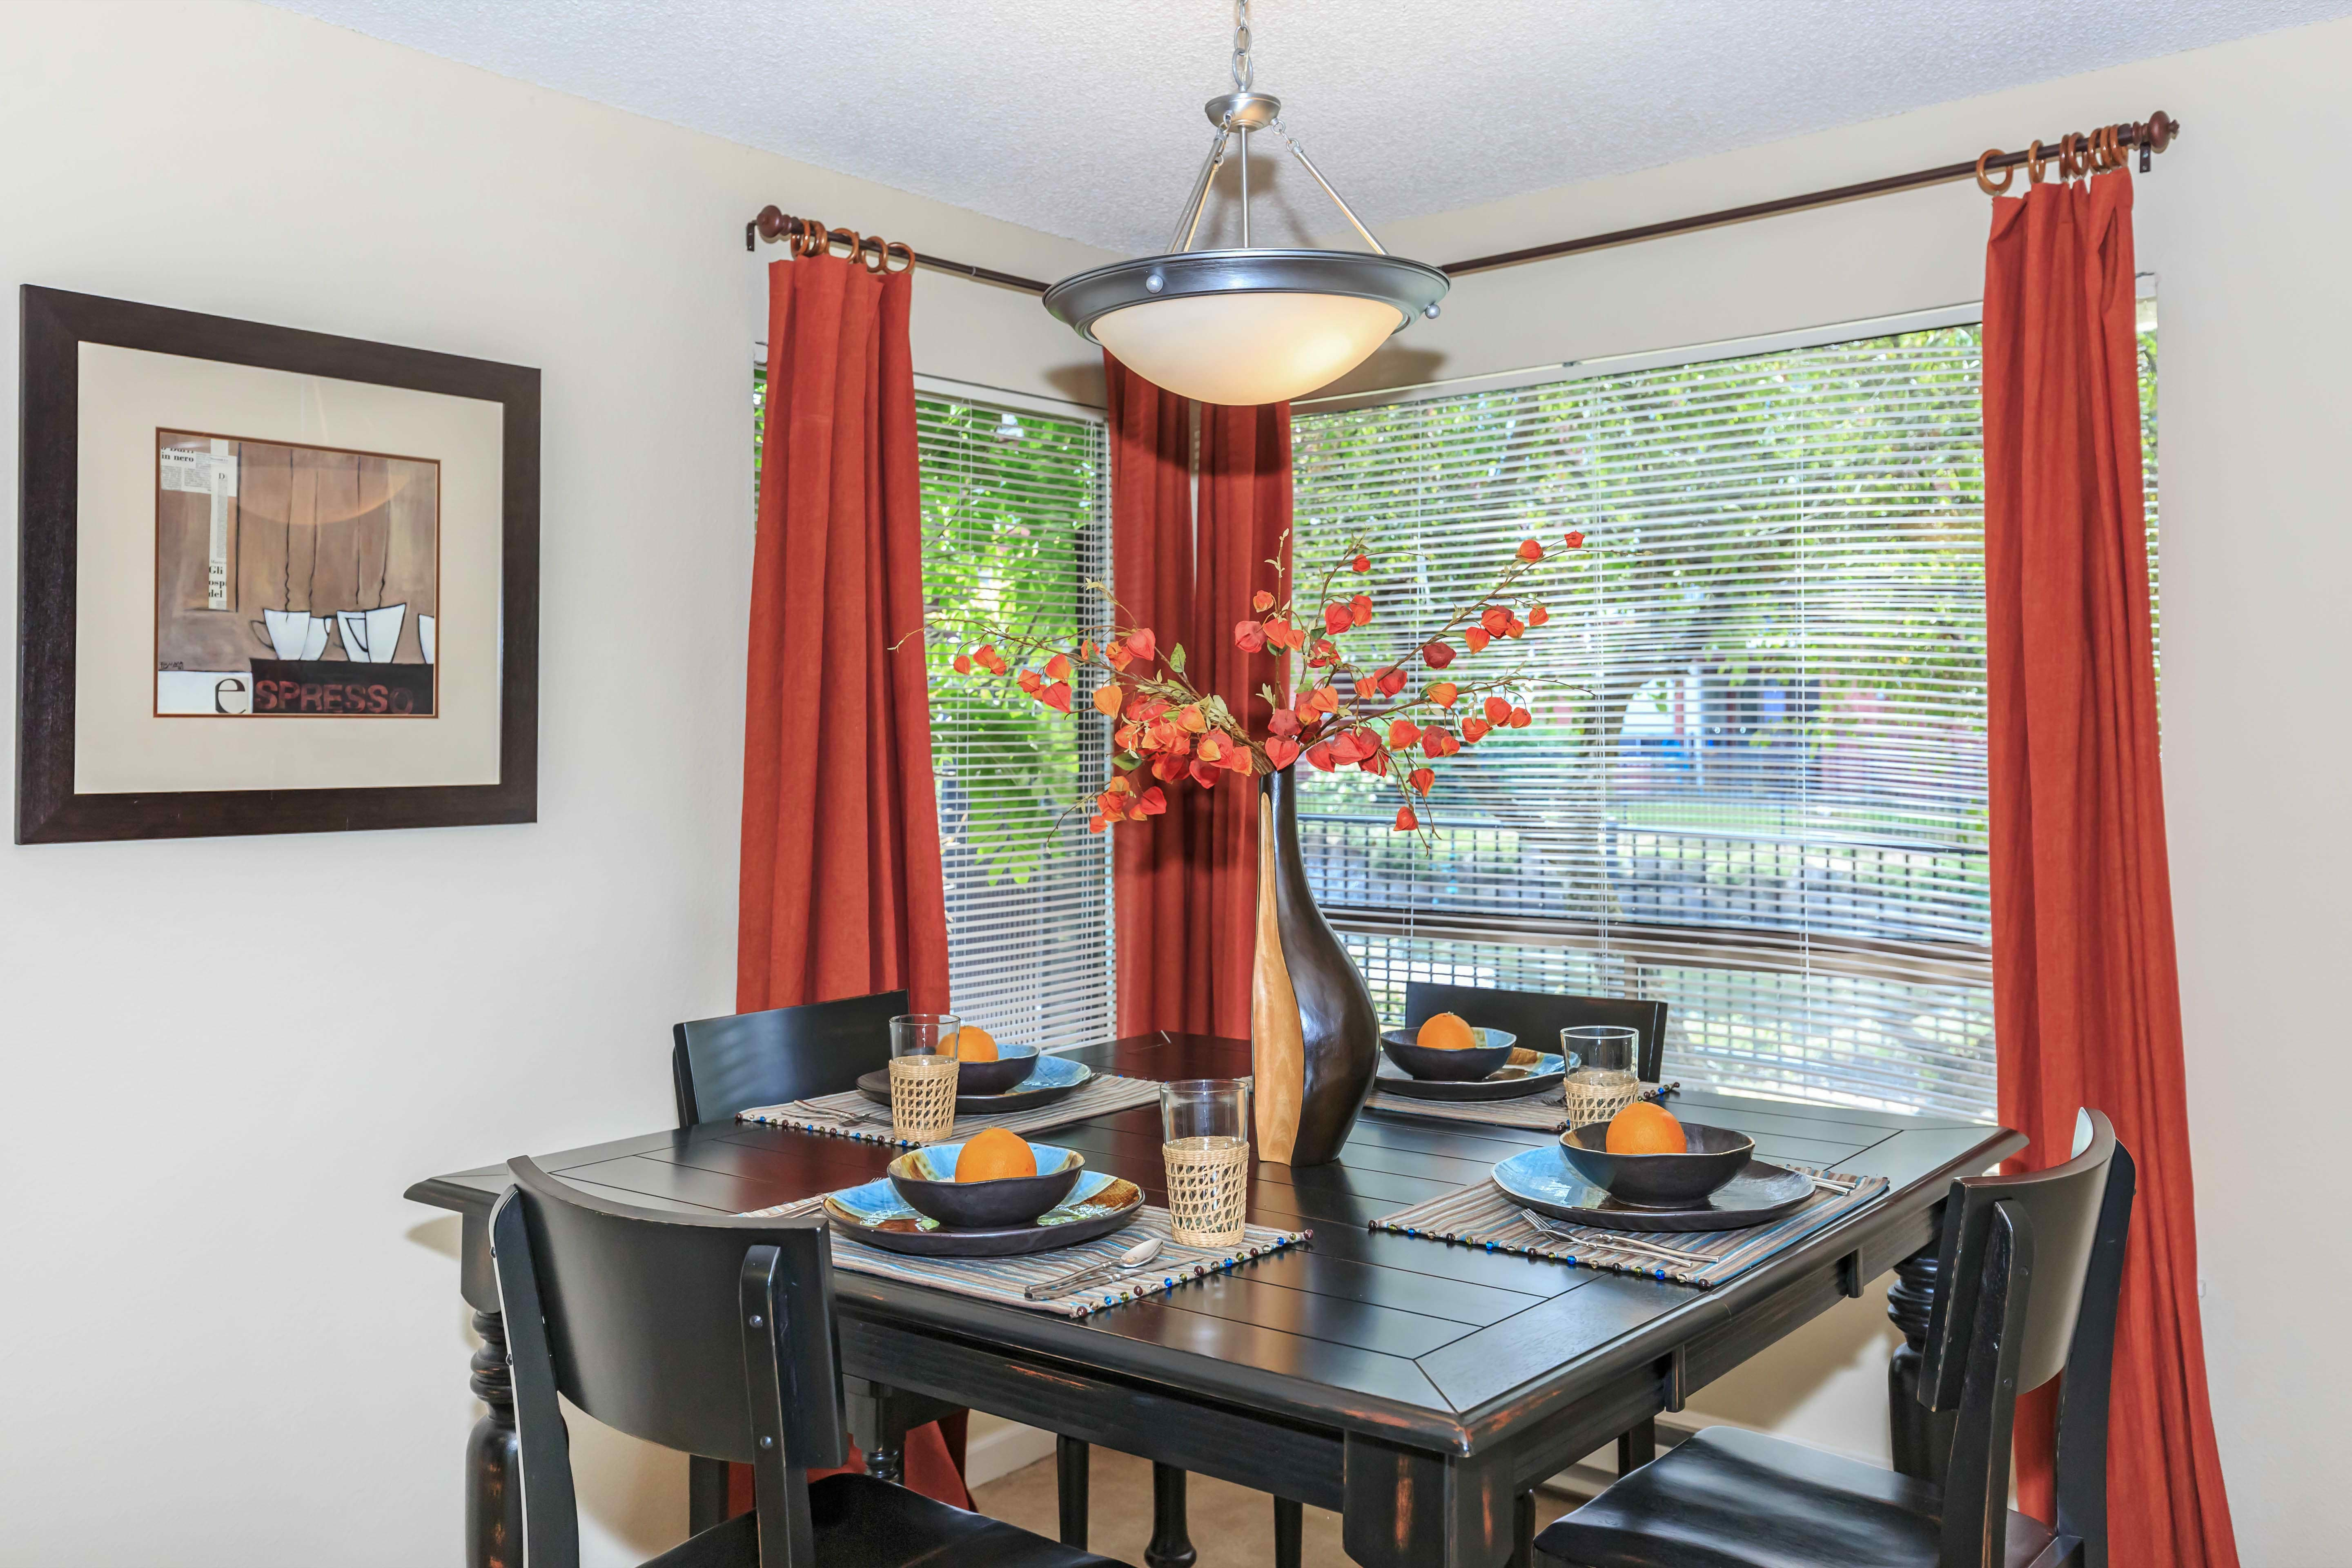 Waterbrook Lofts And Apartments - Kent, WA Apartments for rent